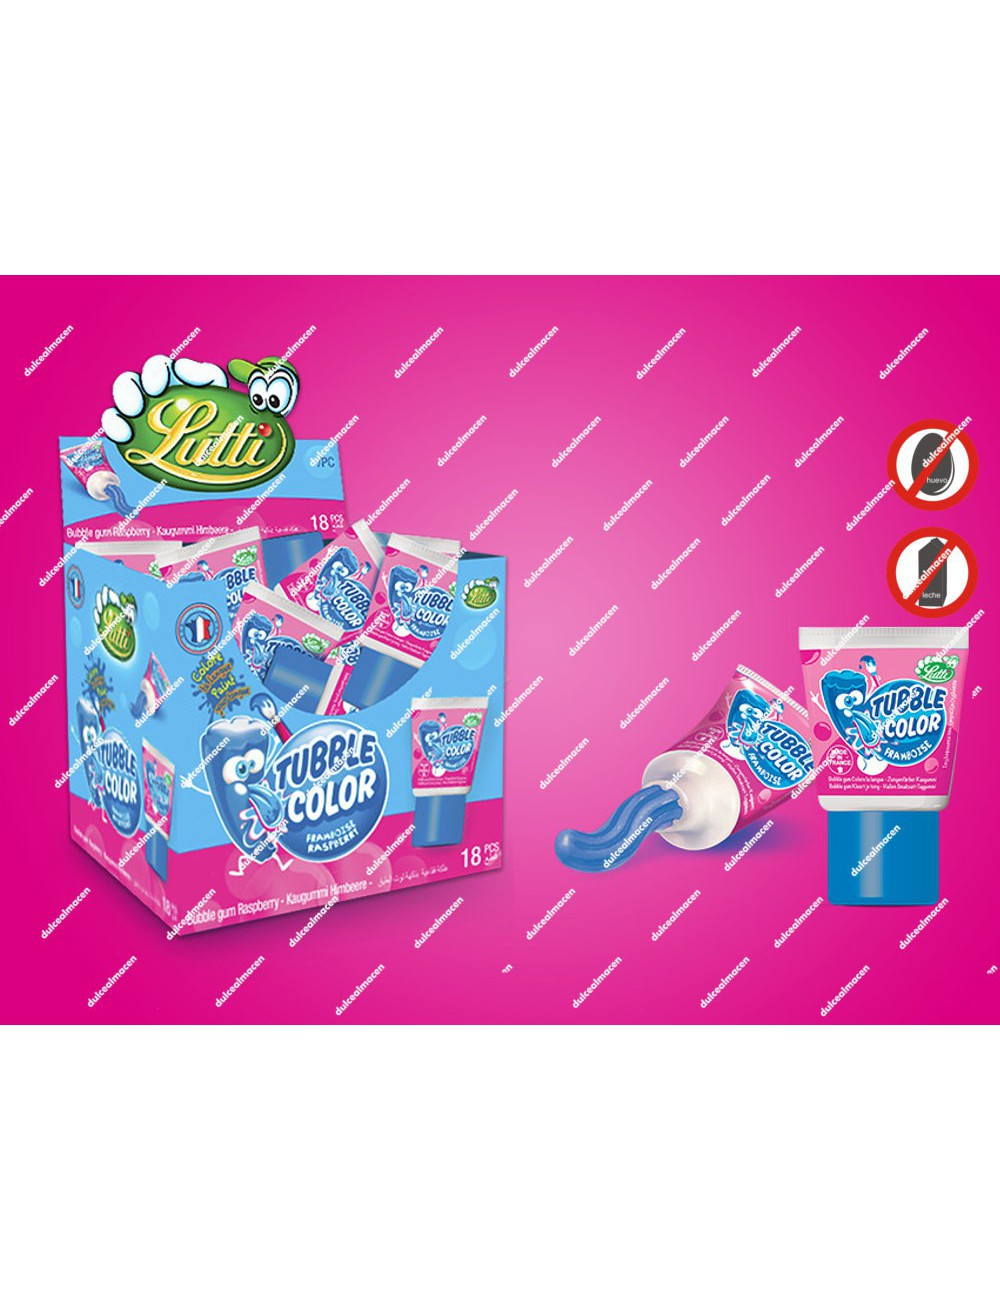 Tubble Gum pintalenguas